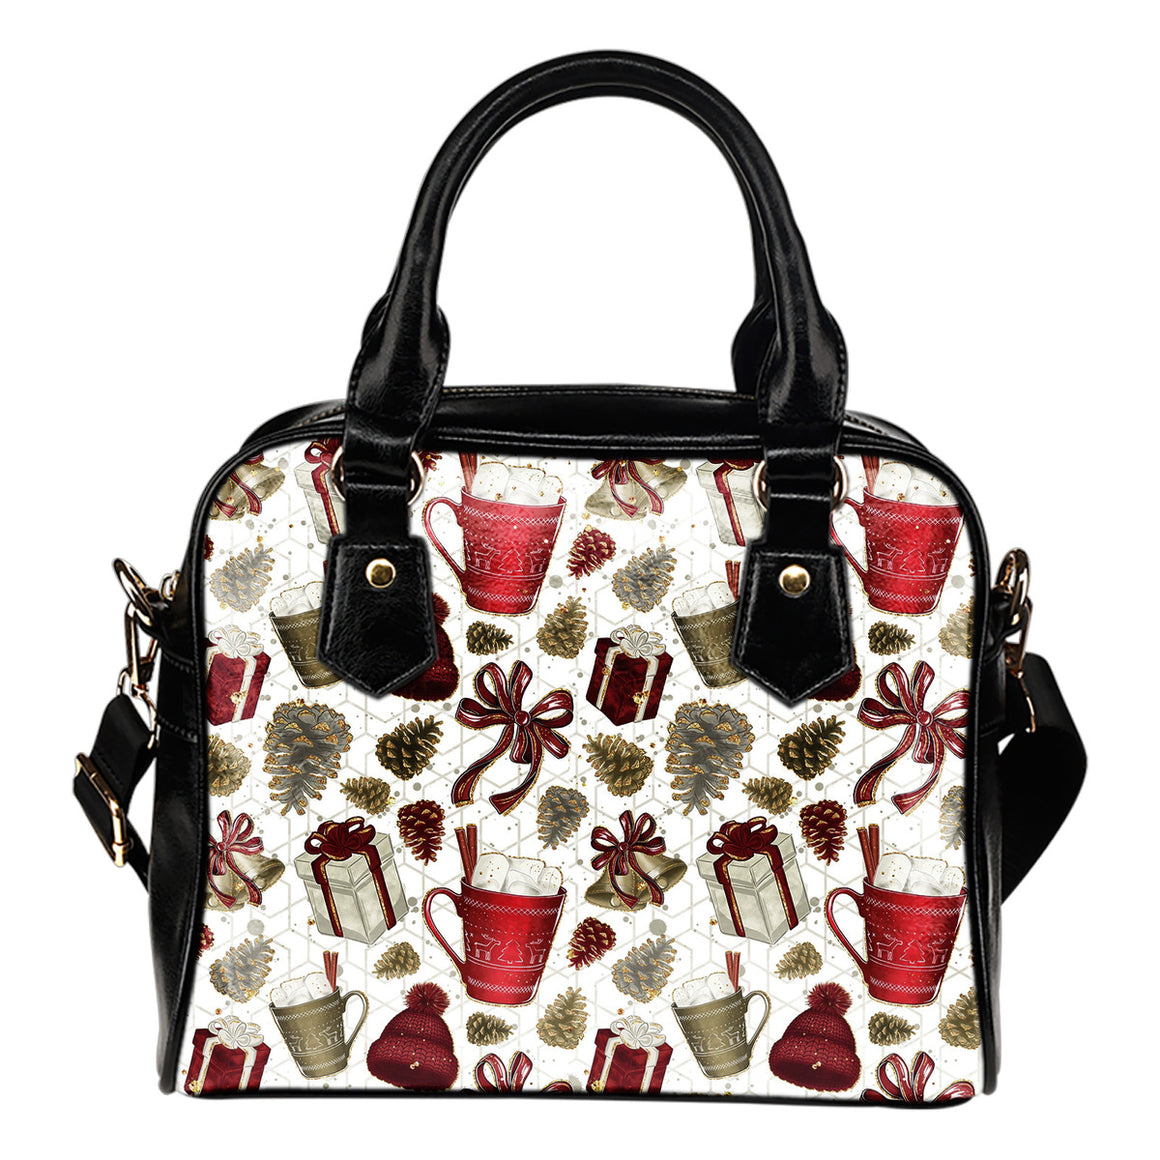 CHRISTMAS GIFTS SHOULDER BAG